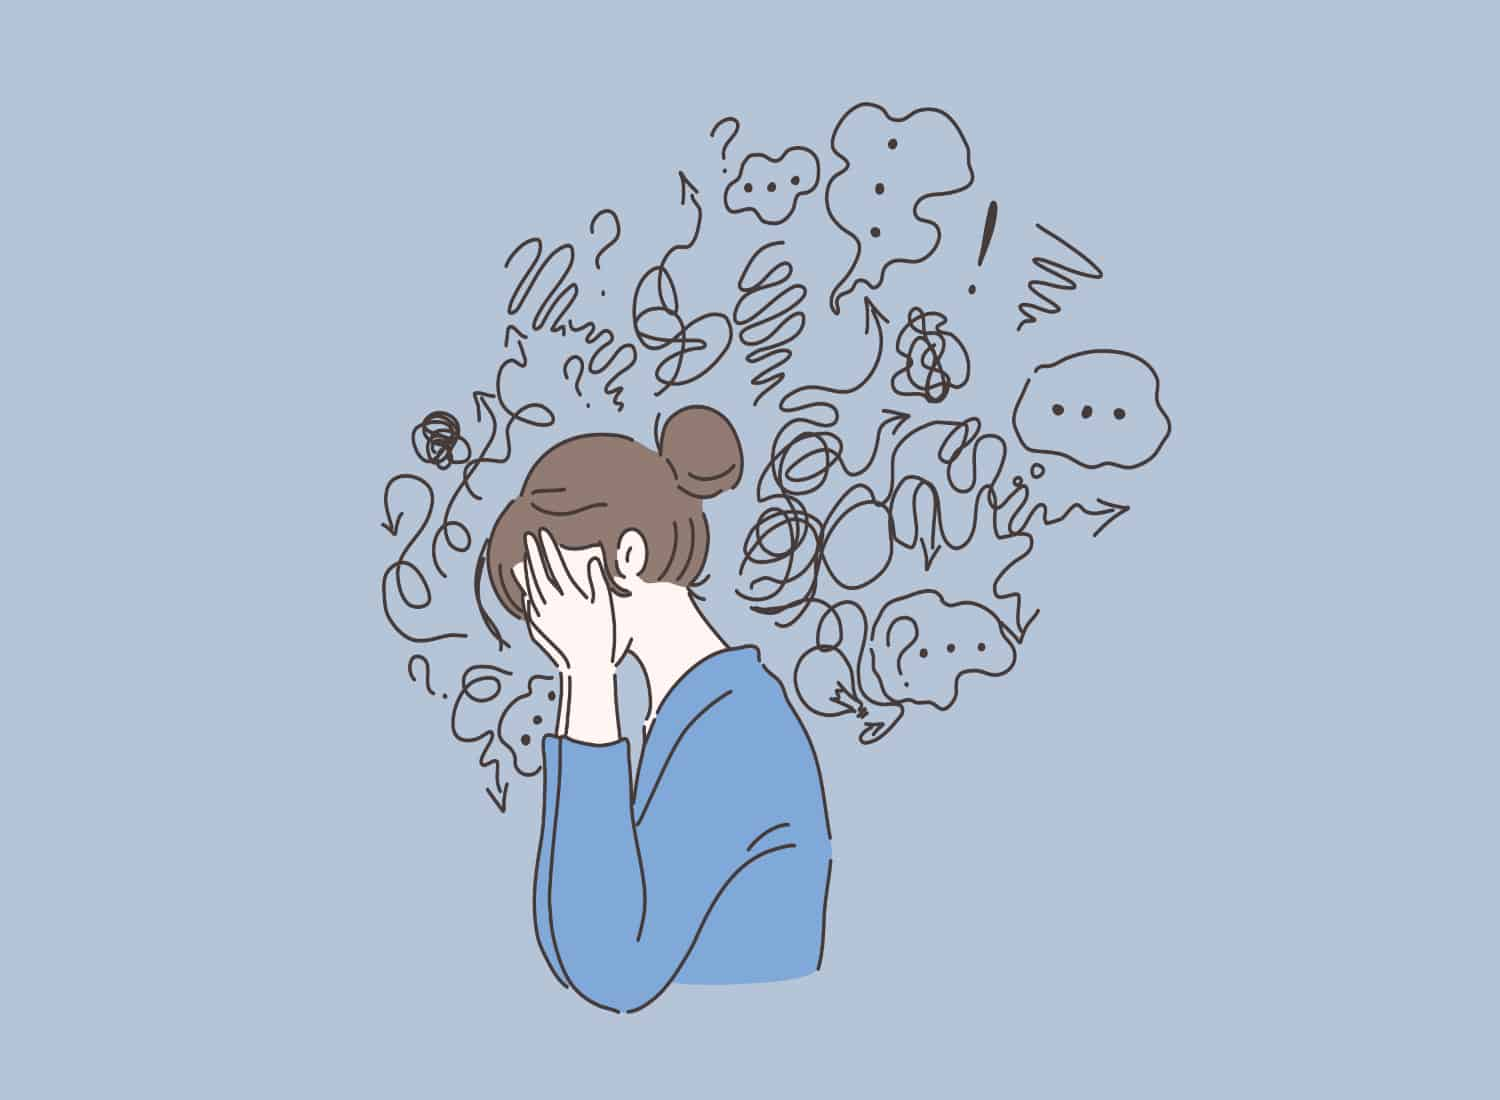 How To Overcome Overthinking - SmallBusinessify.com